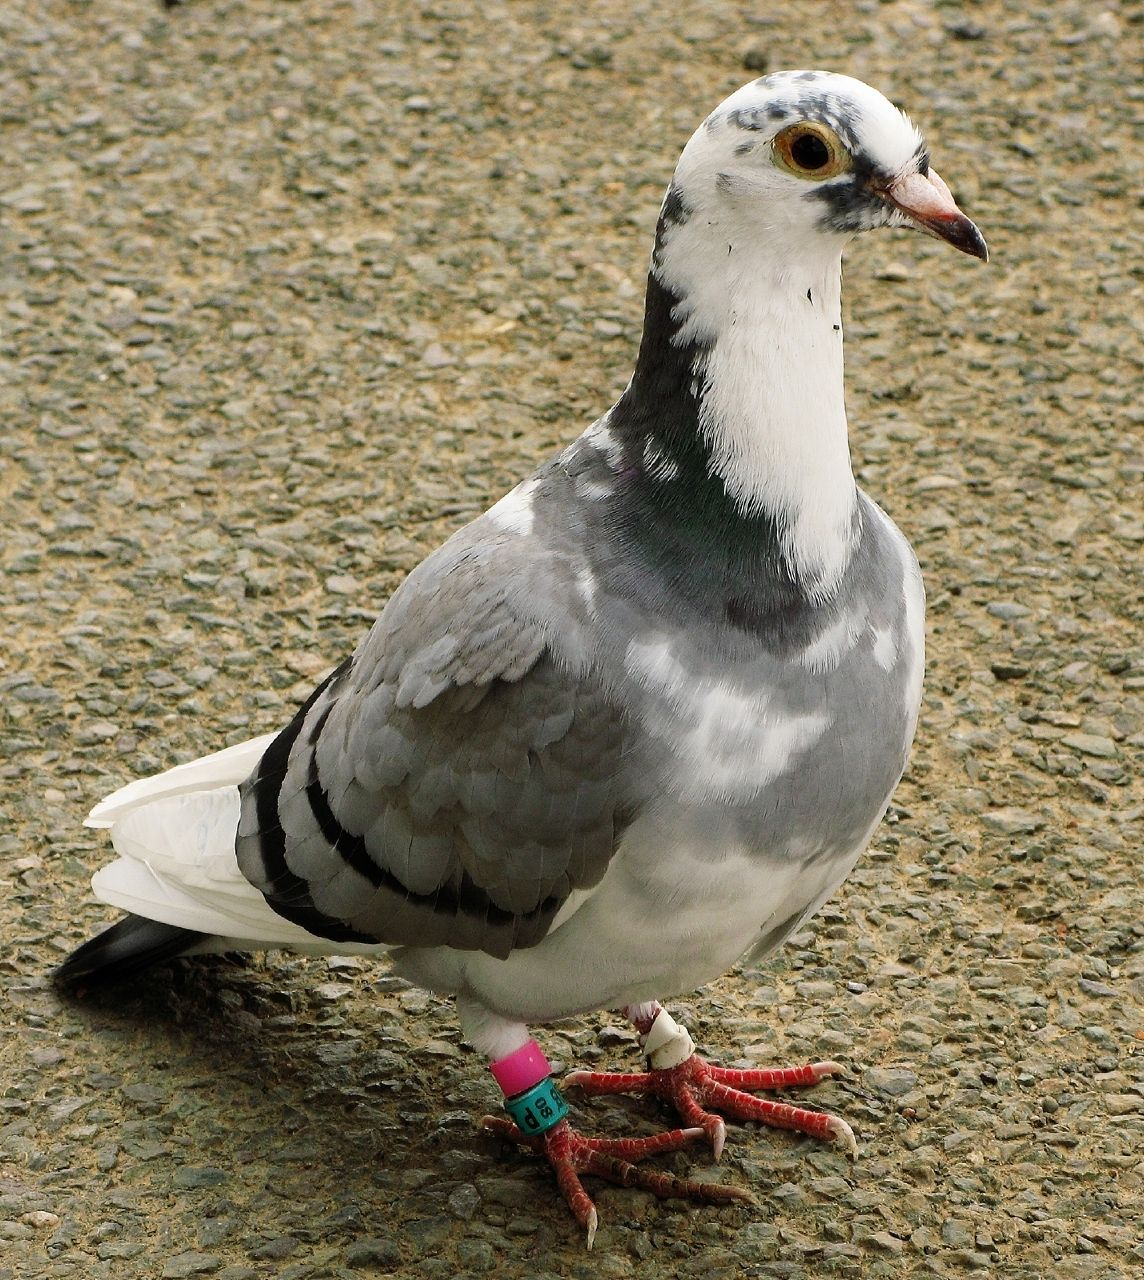 60 Top Pigeon Pictures Photos & Images - Getty Images